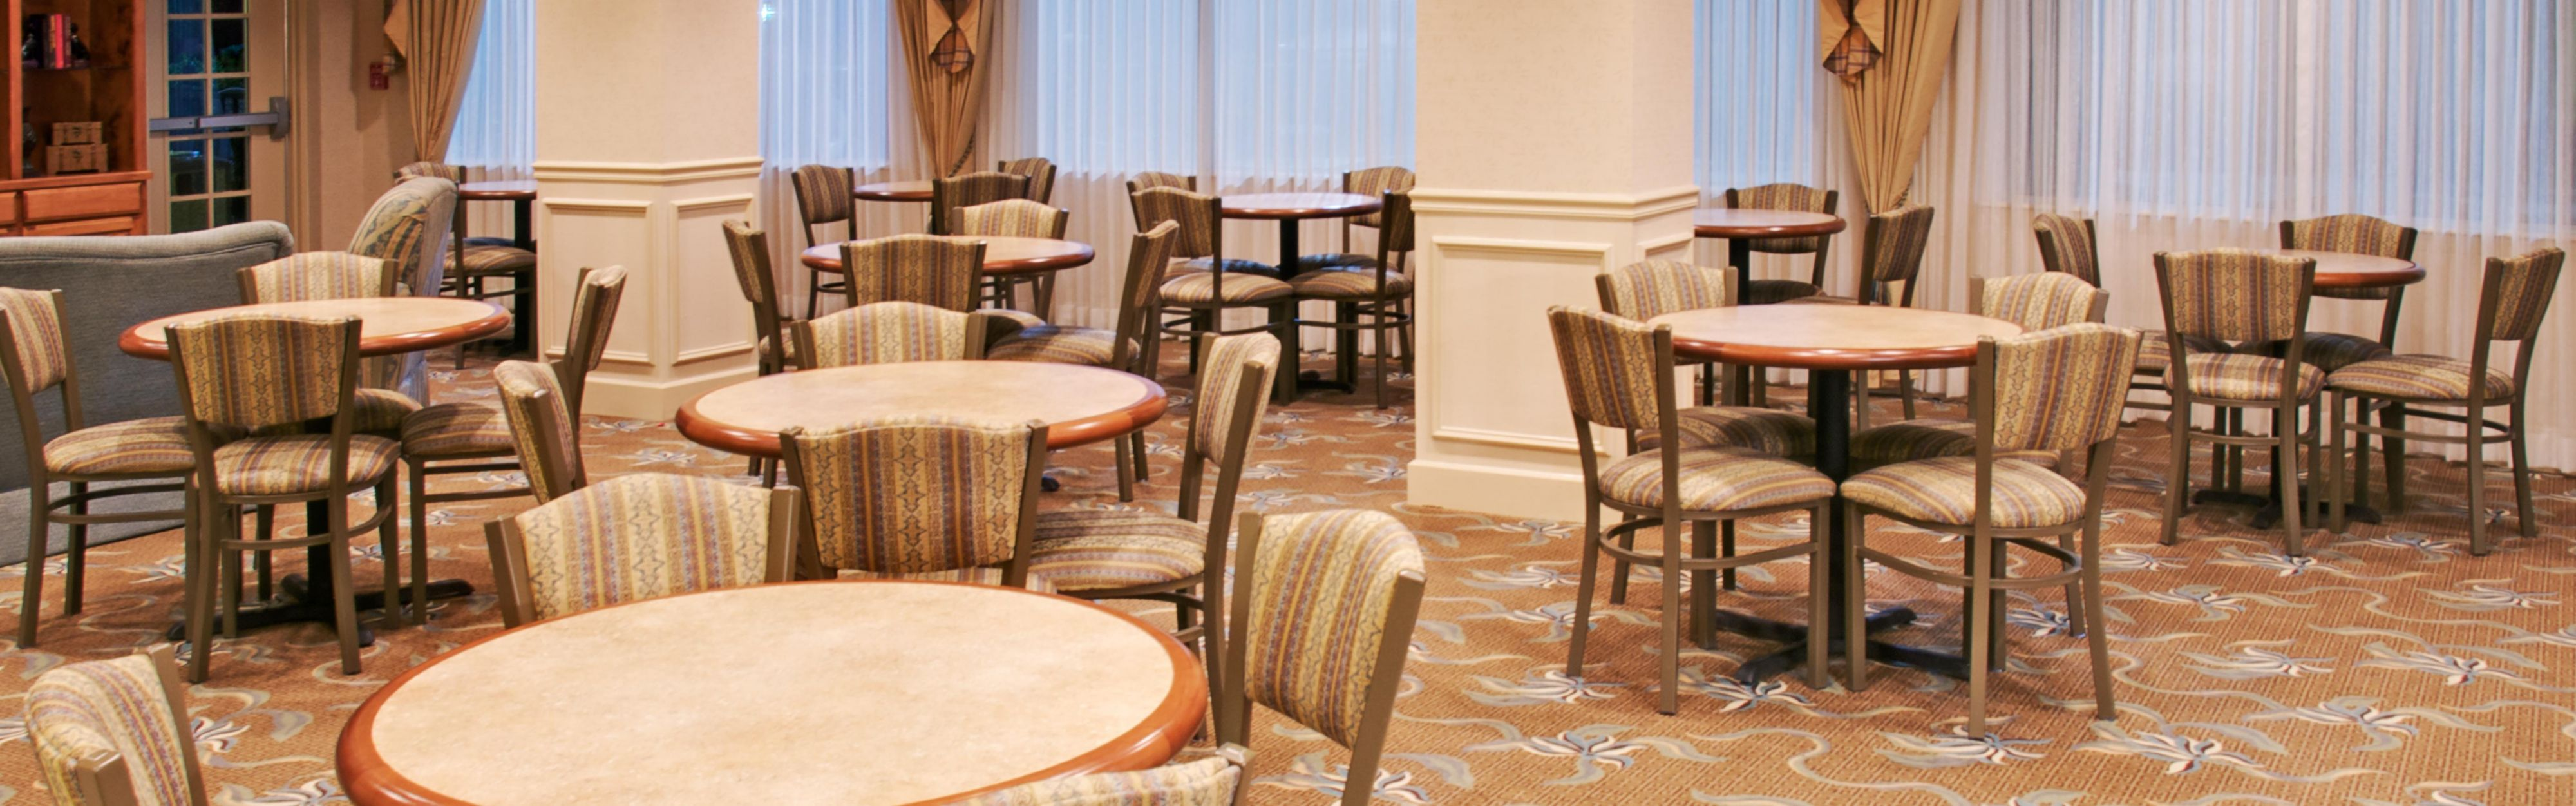 Holiday Inn Express & Suites Jasper image 3